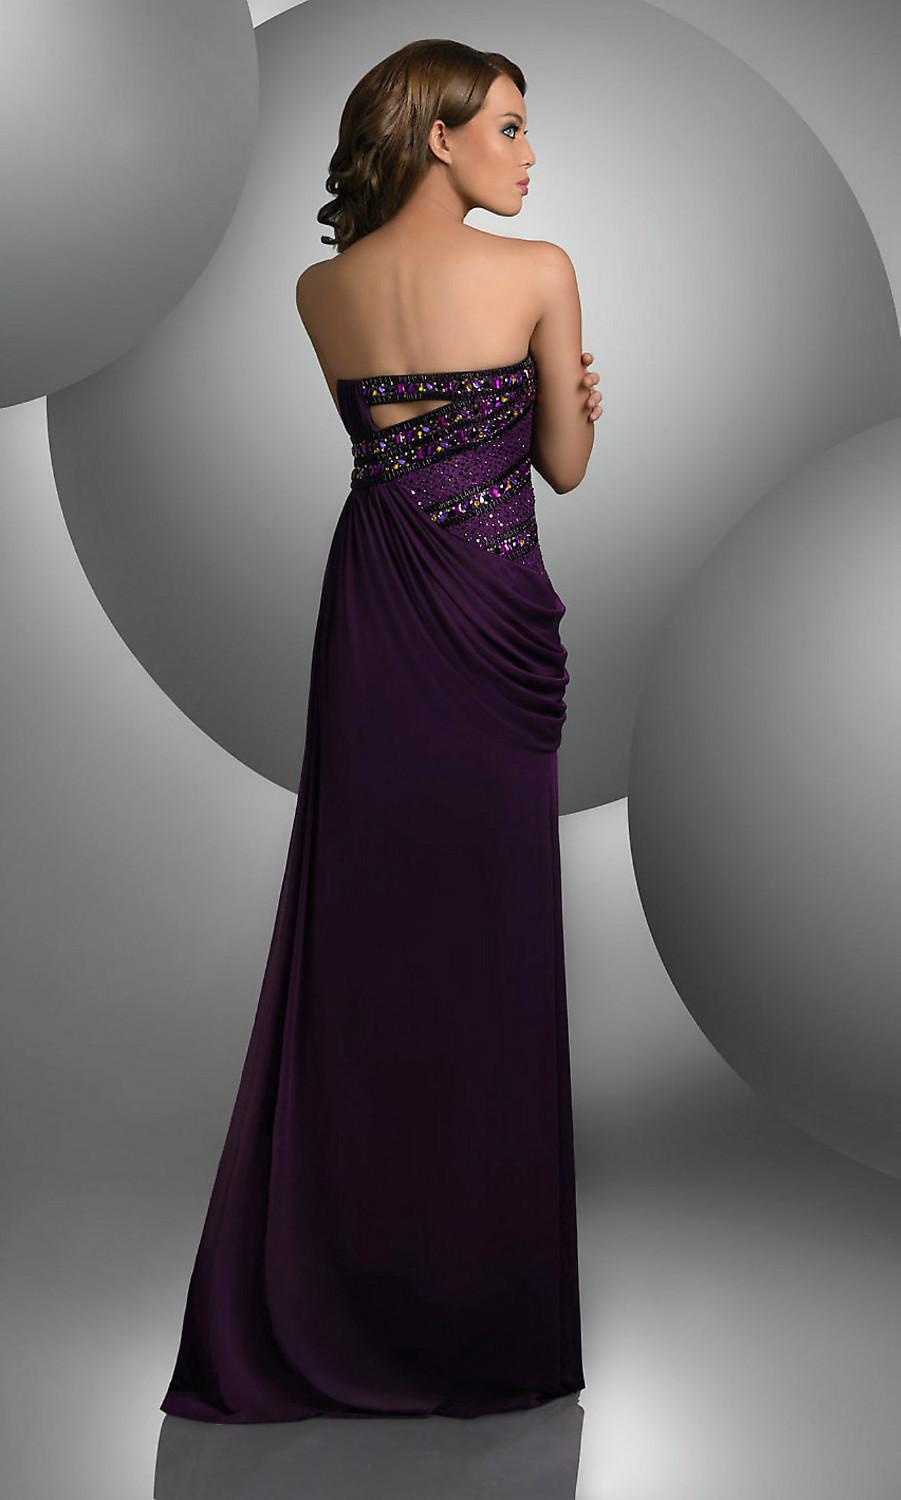 Evening dresses for rent in san diego - Dress style